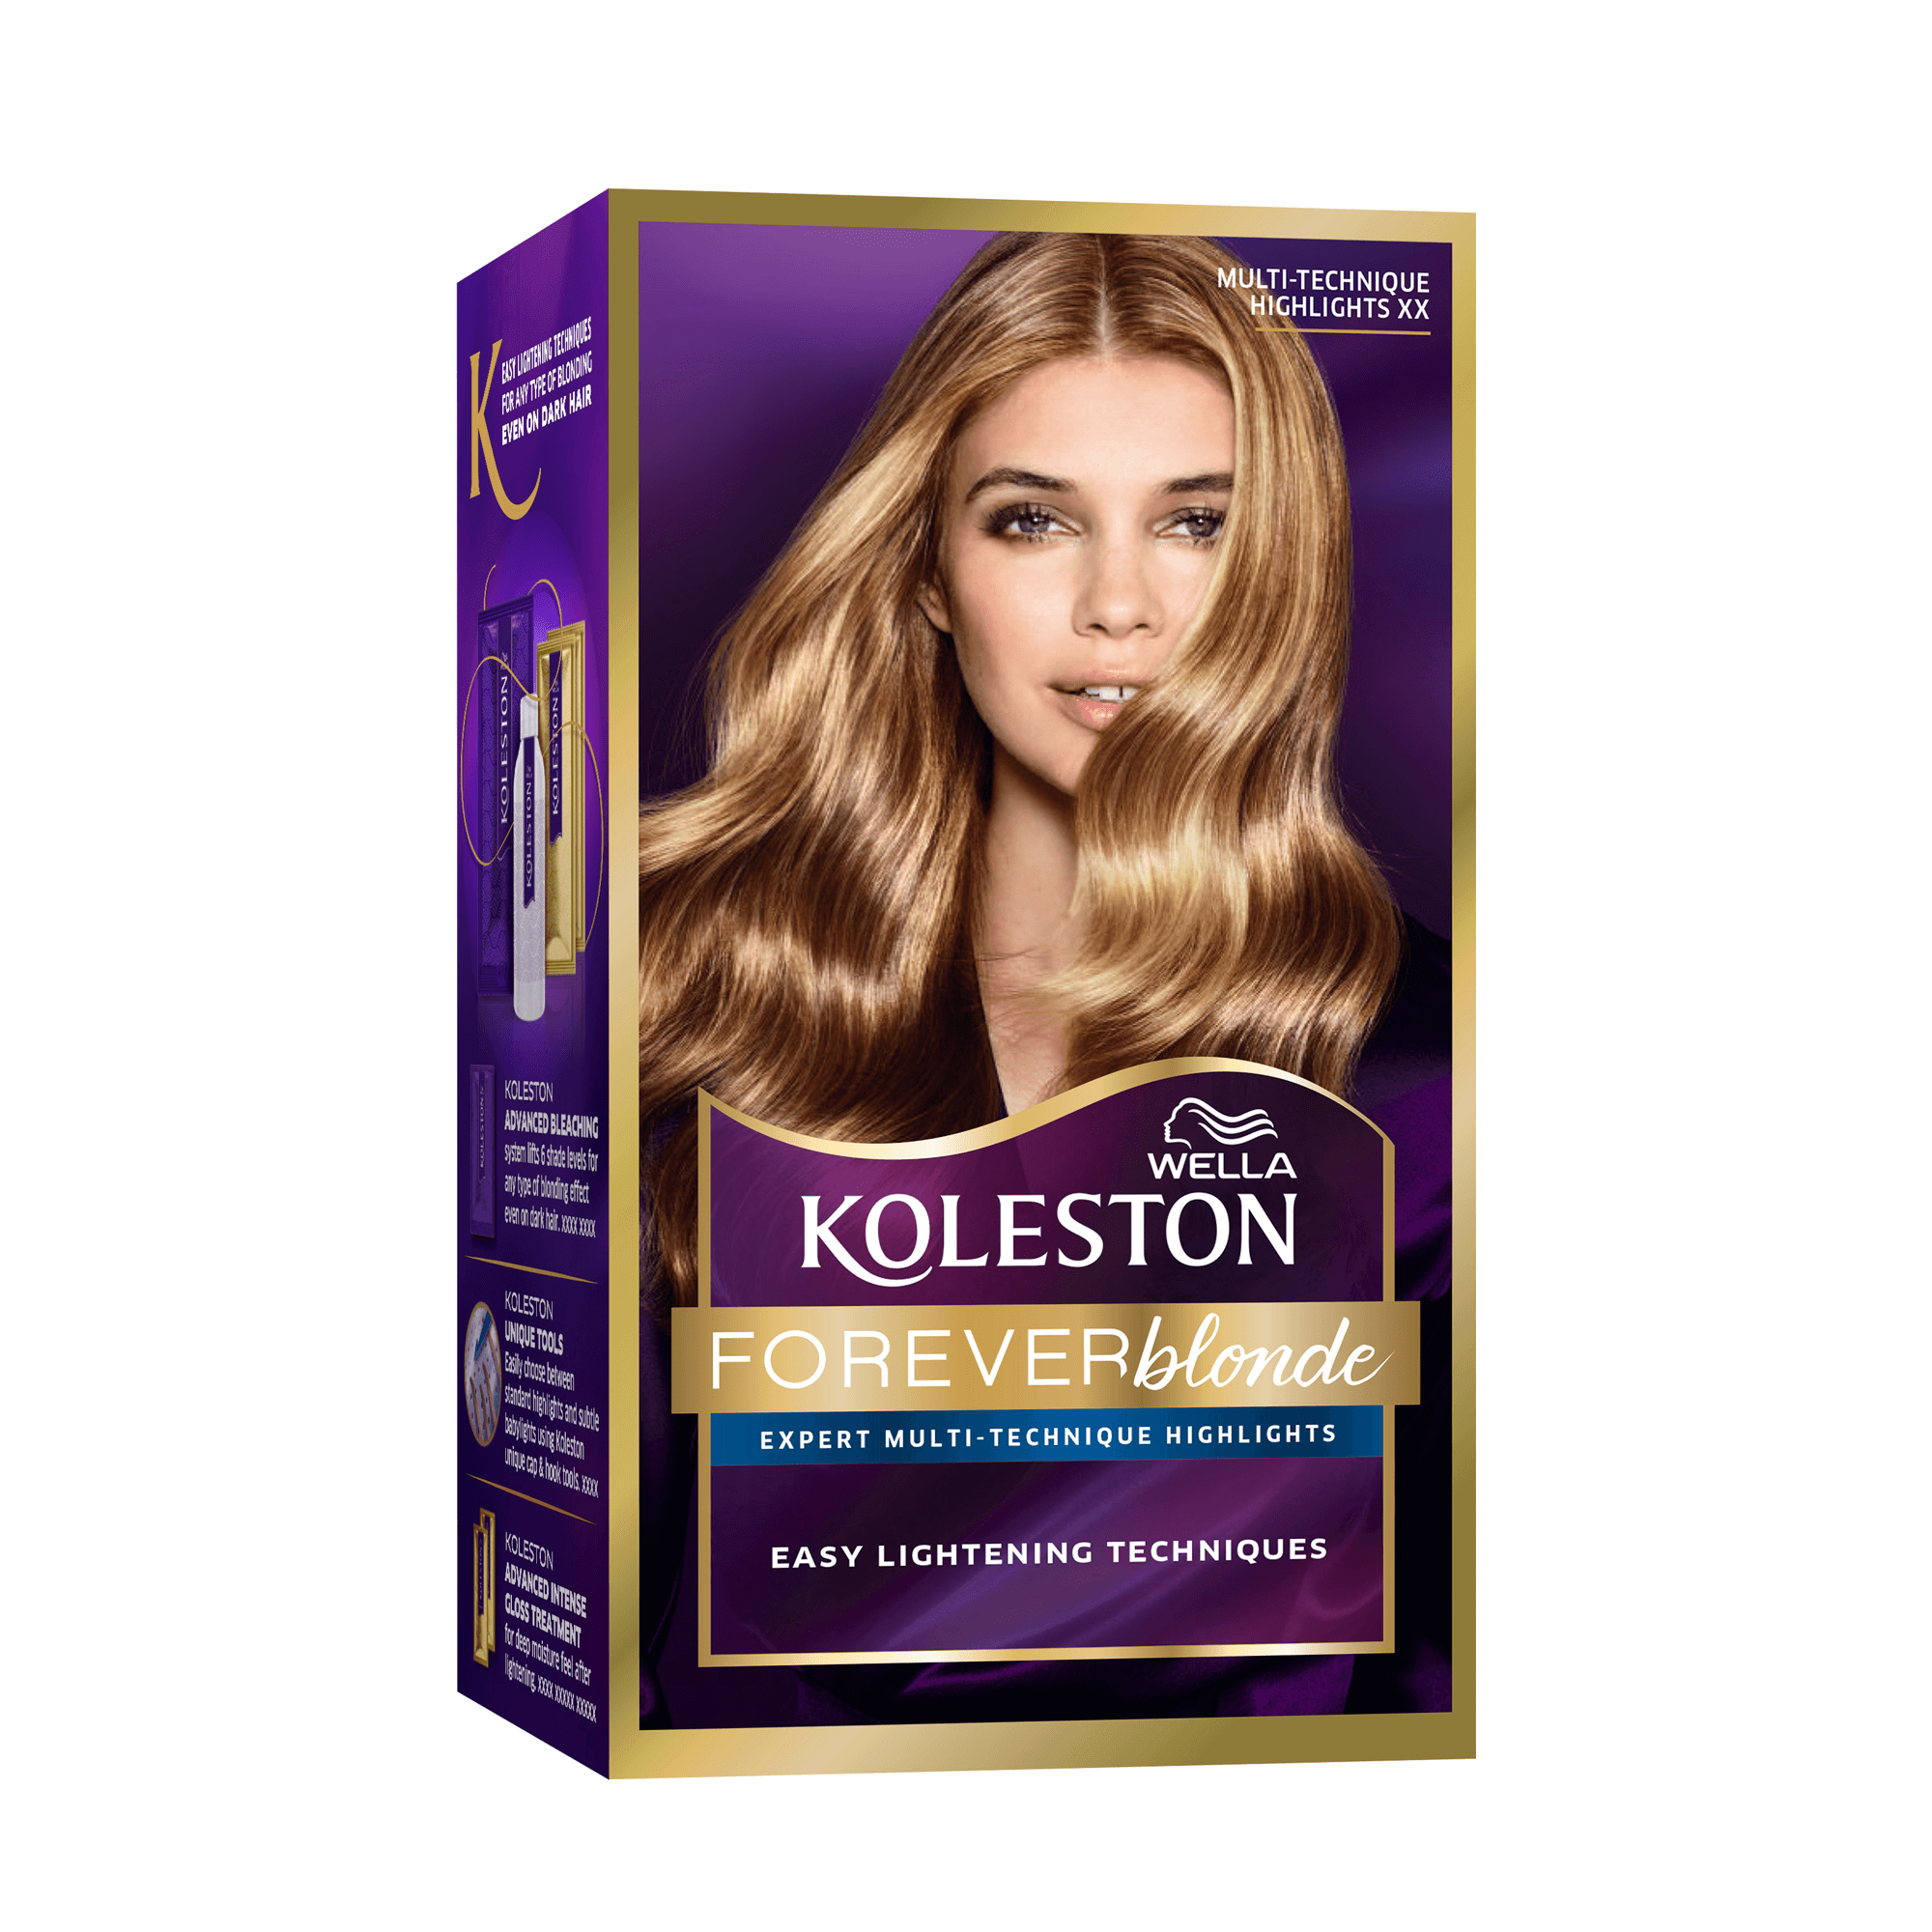 Wella Koleston Permanent Hair Color Cream Multi Technique Highlights Wella